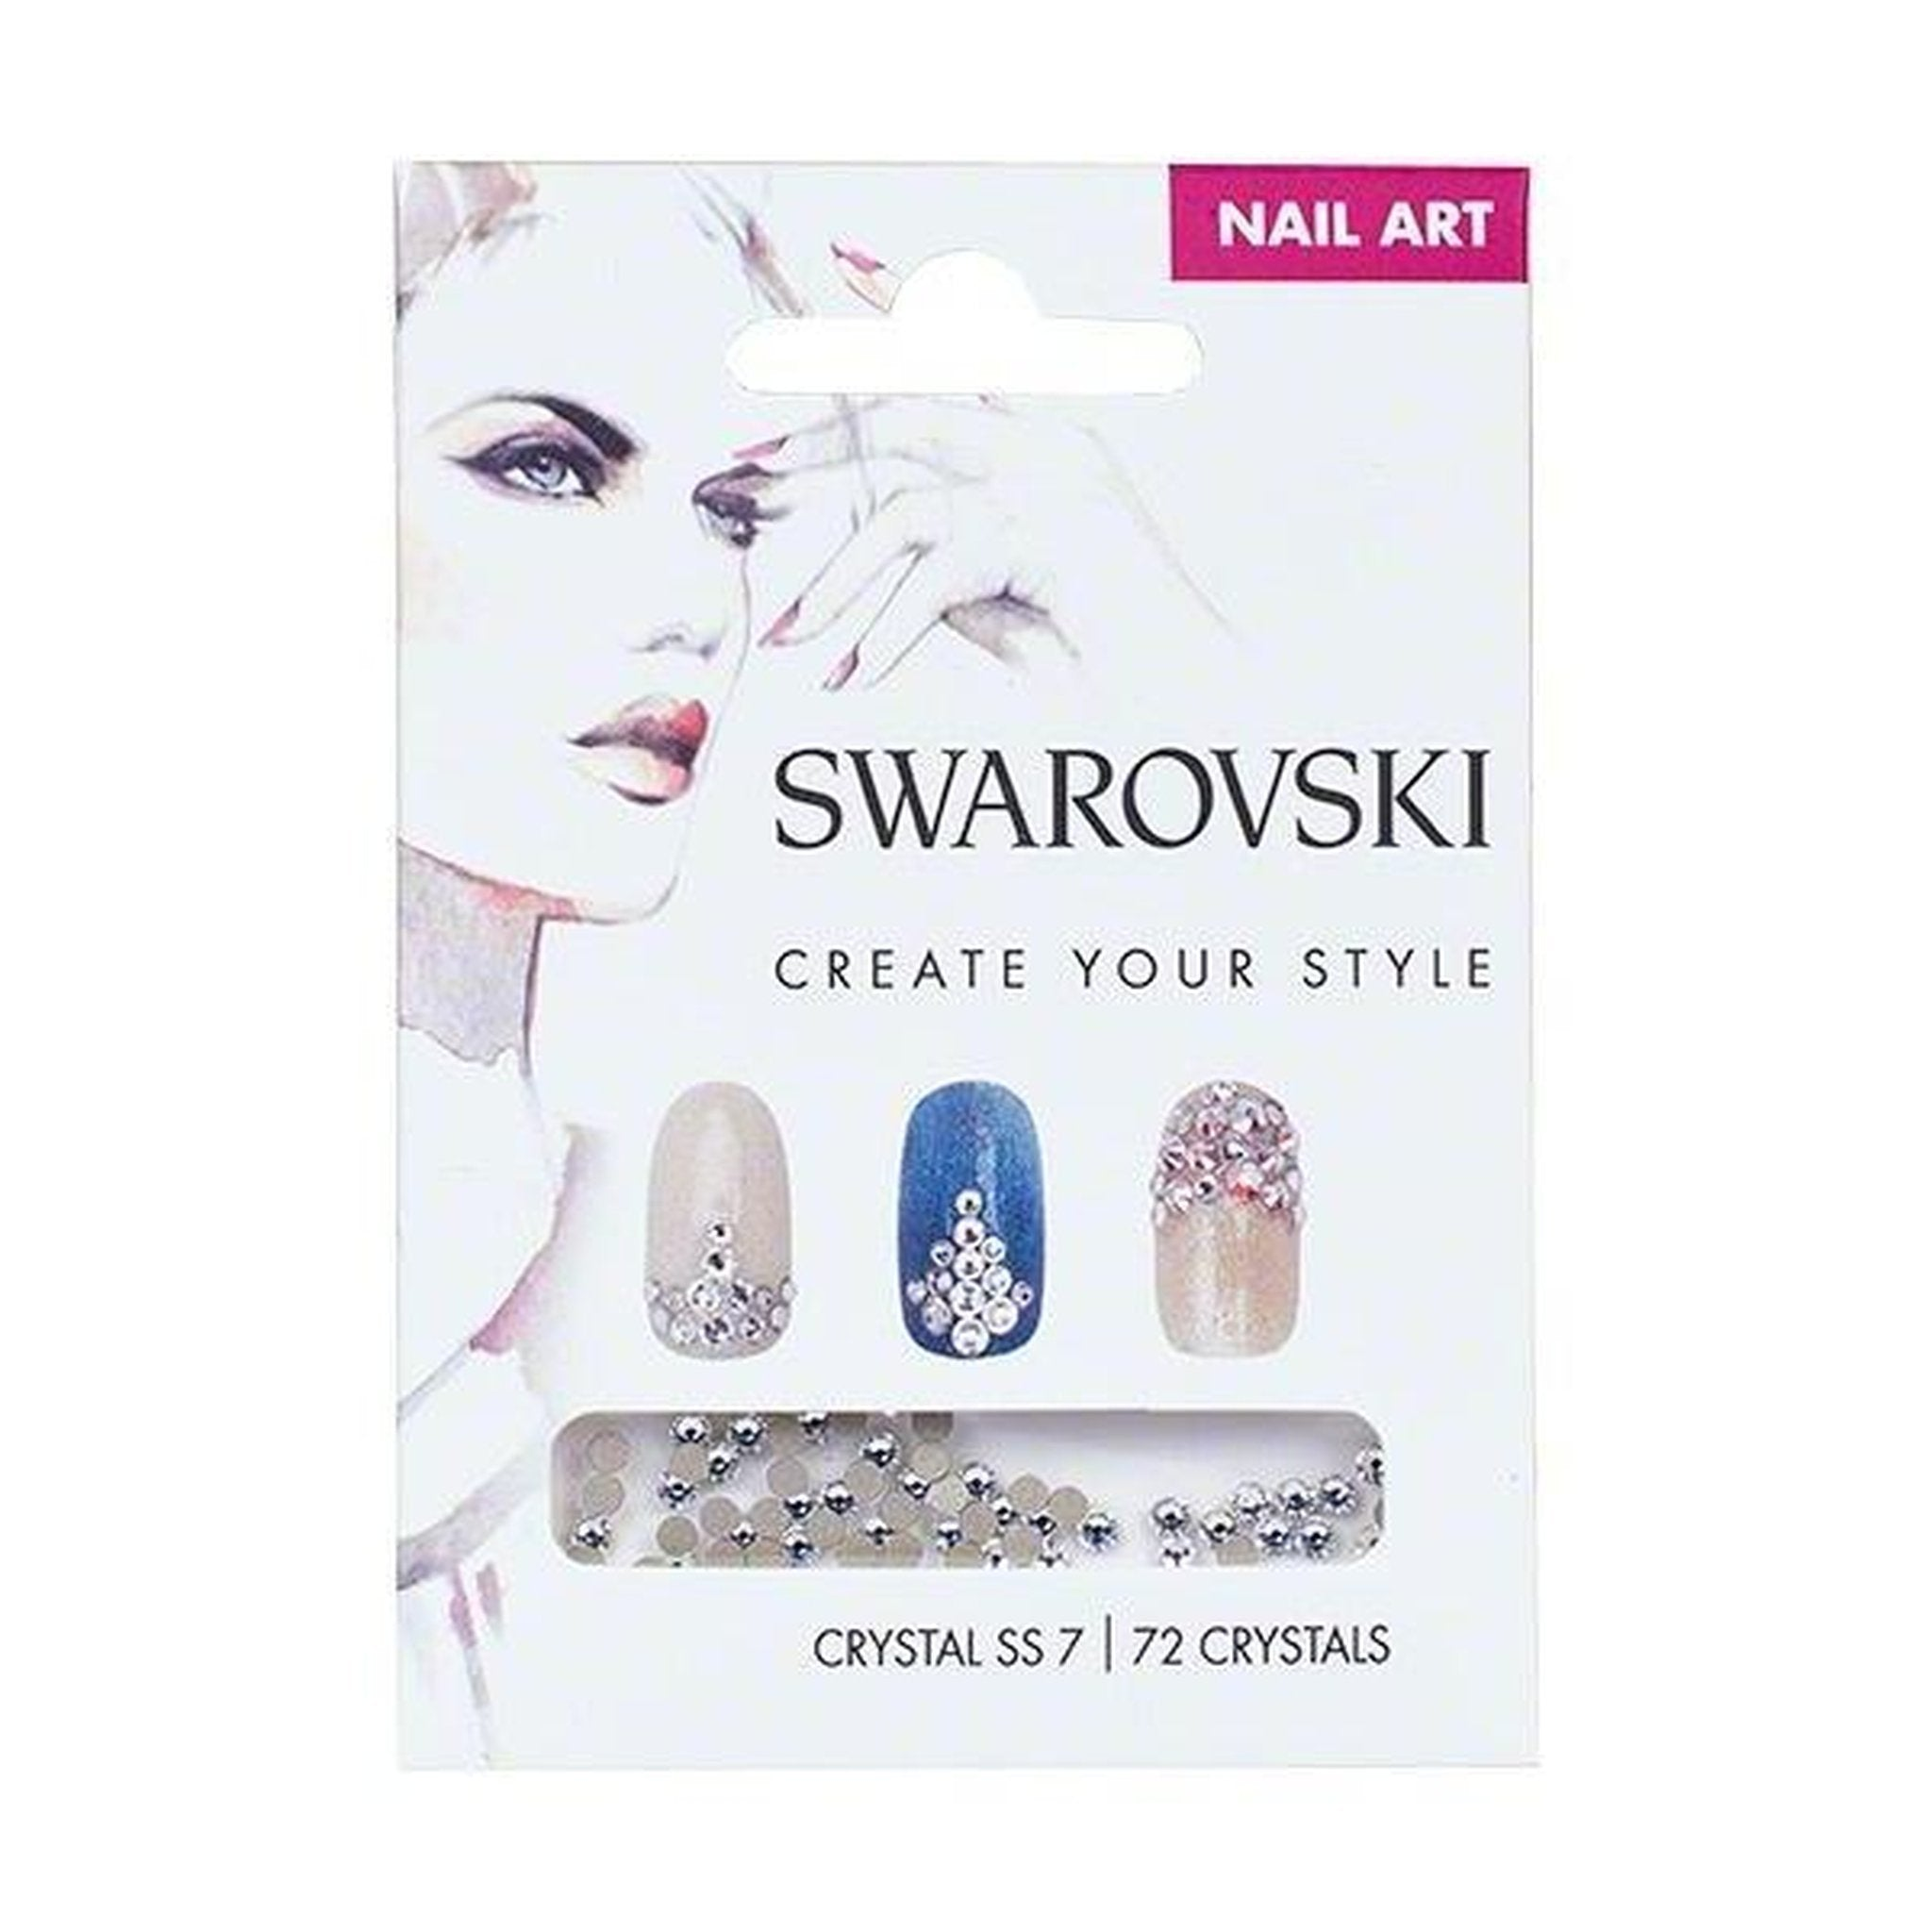 SWAROVSKI NAIL ART LOOSE CRYSTALS - CRYSTAL SS7-Gel Essentialz